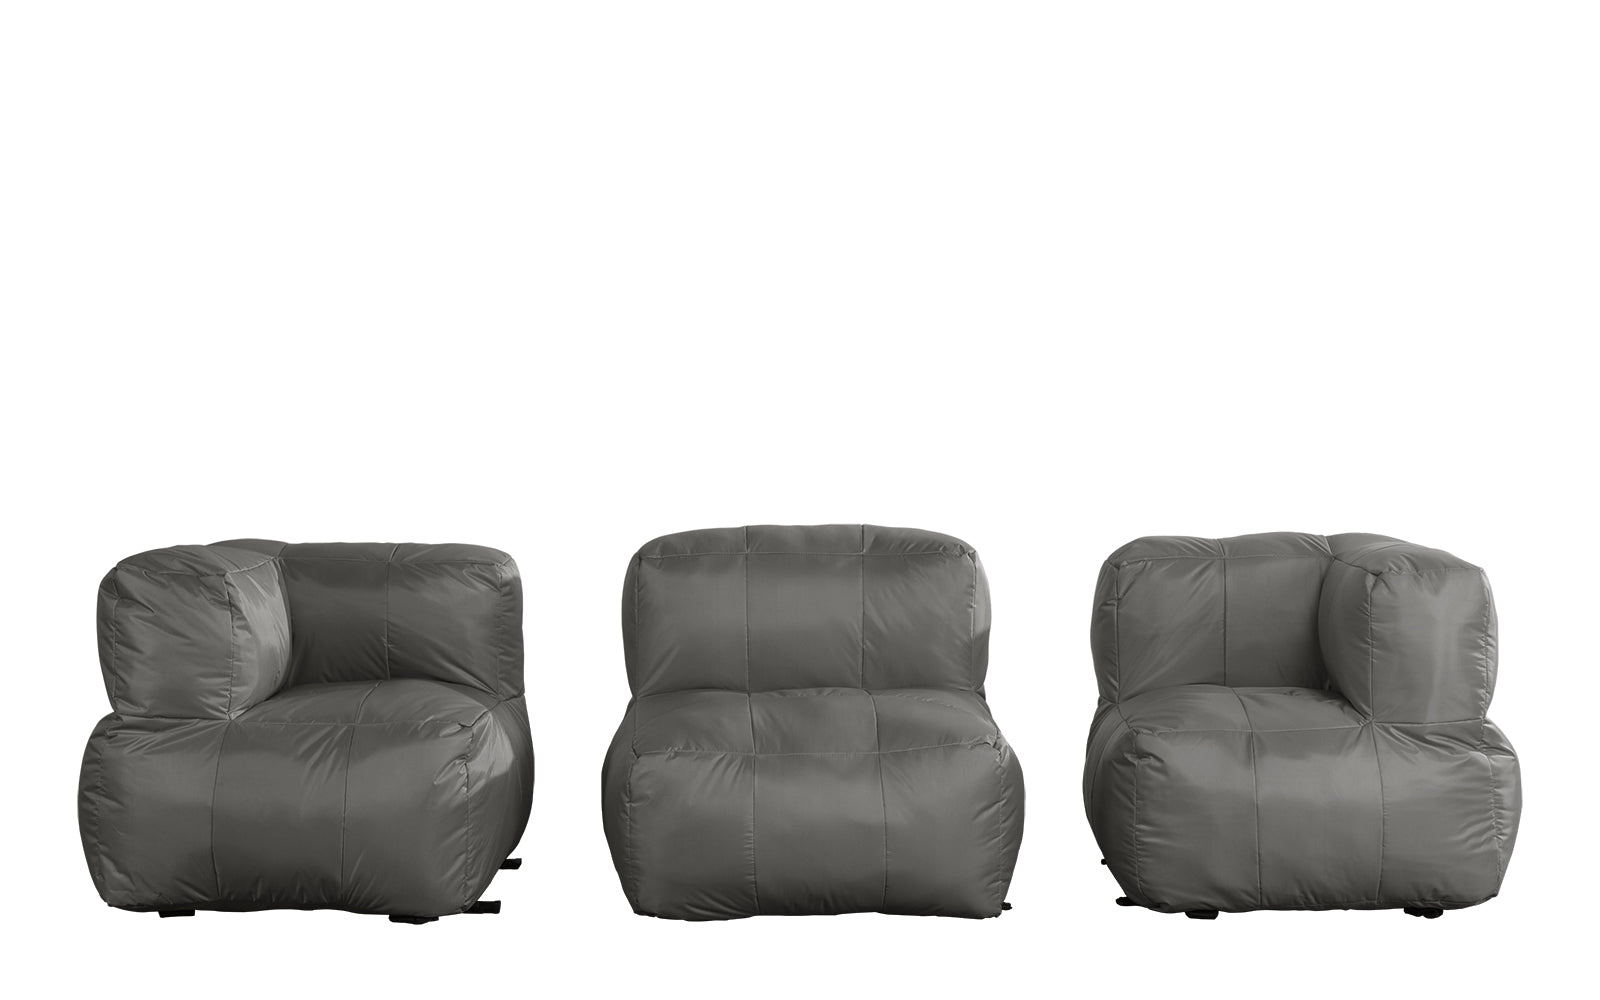 Waterproof Bean Bag Gaming Chairs Image